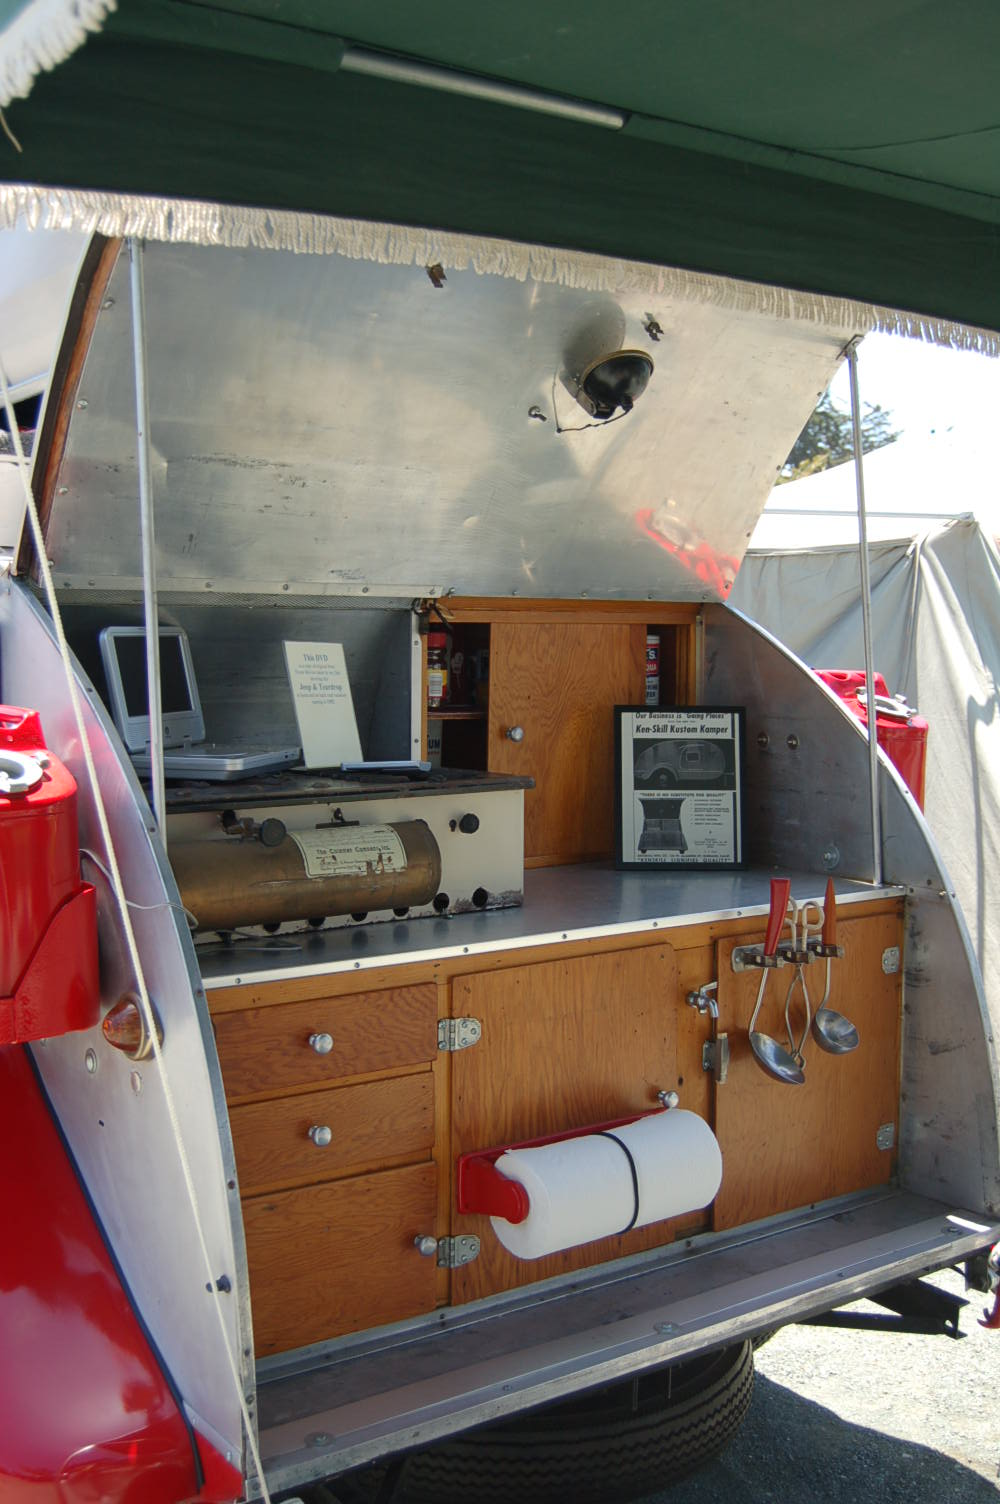 Camper Trailer Kitchen Similiar Teardrop Trailer Kitchen Design Keywords